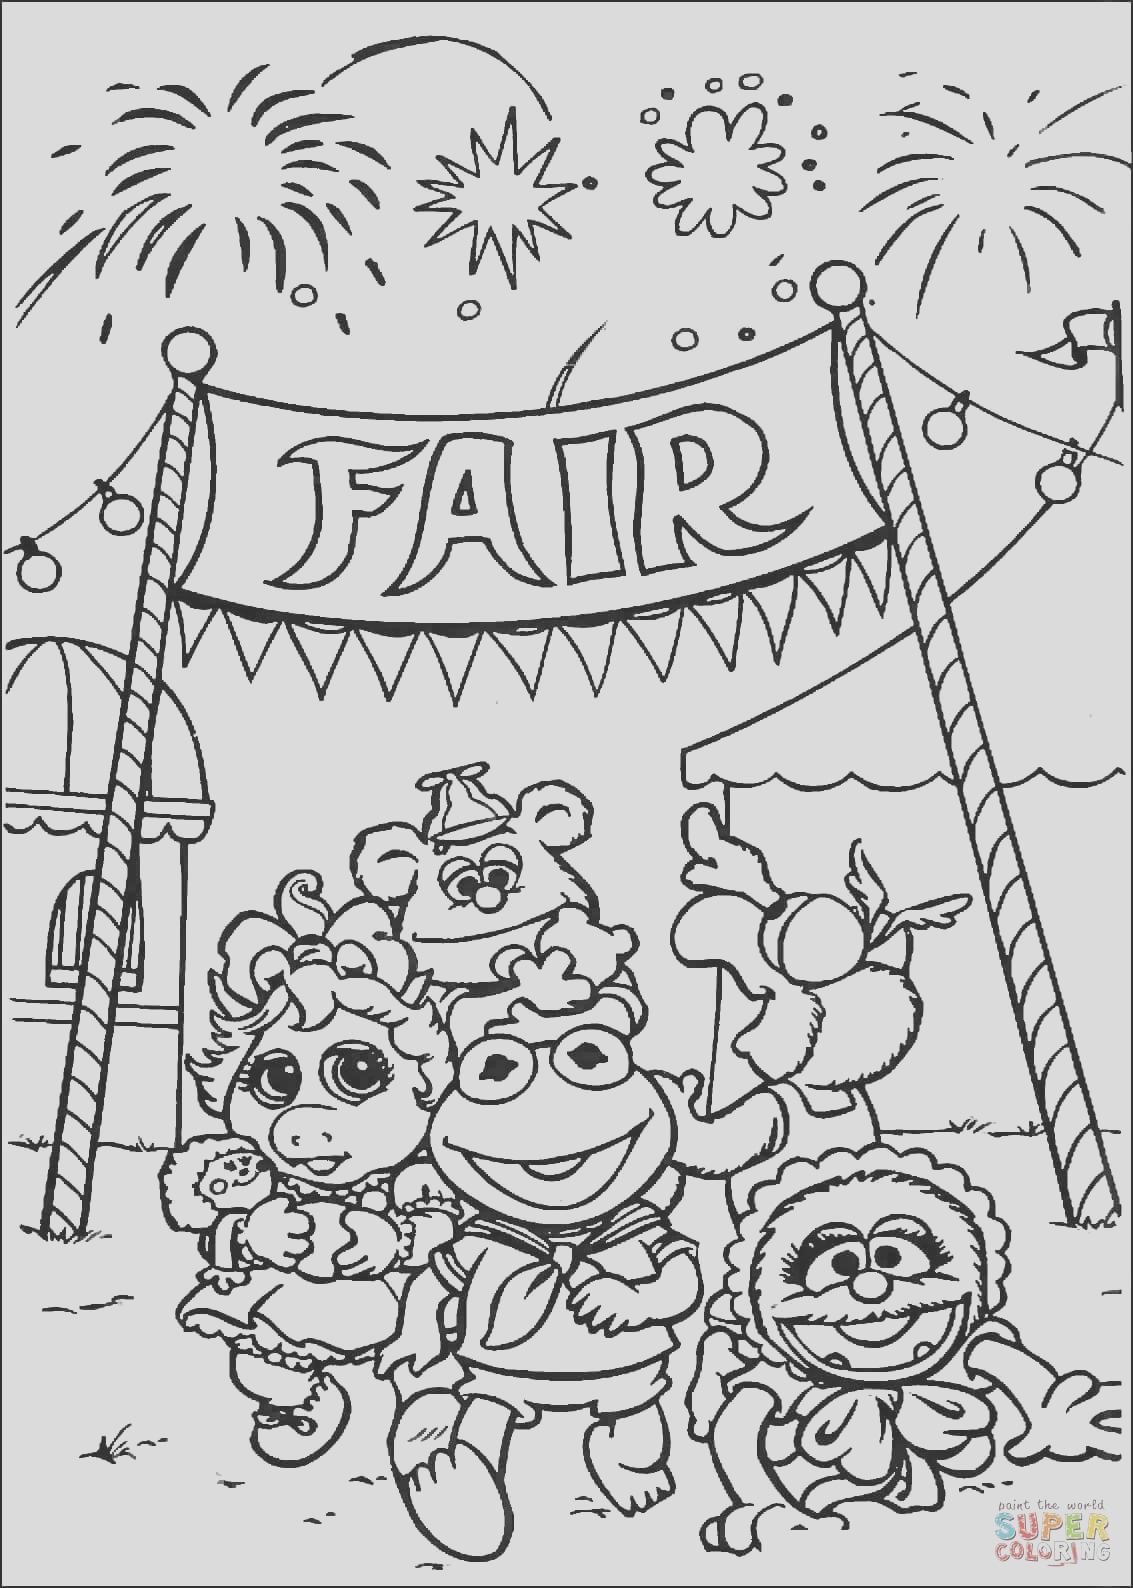 muppet babies goes to fair market